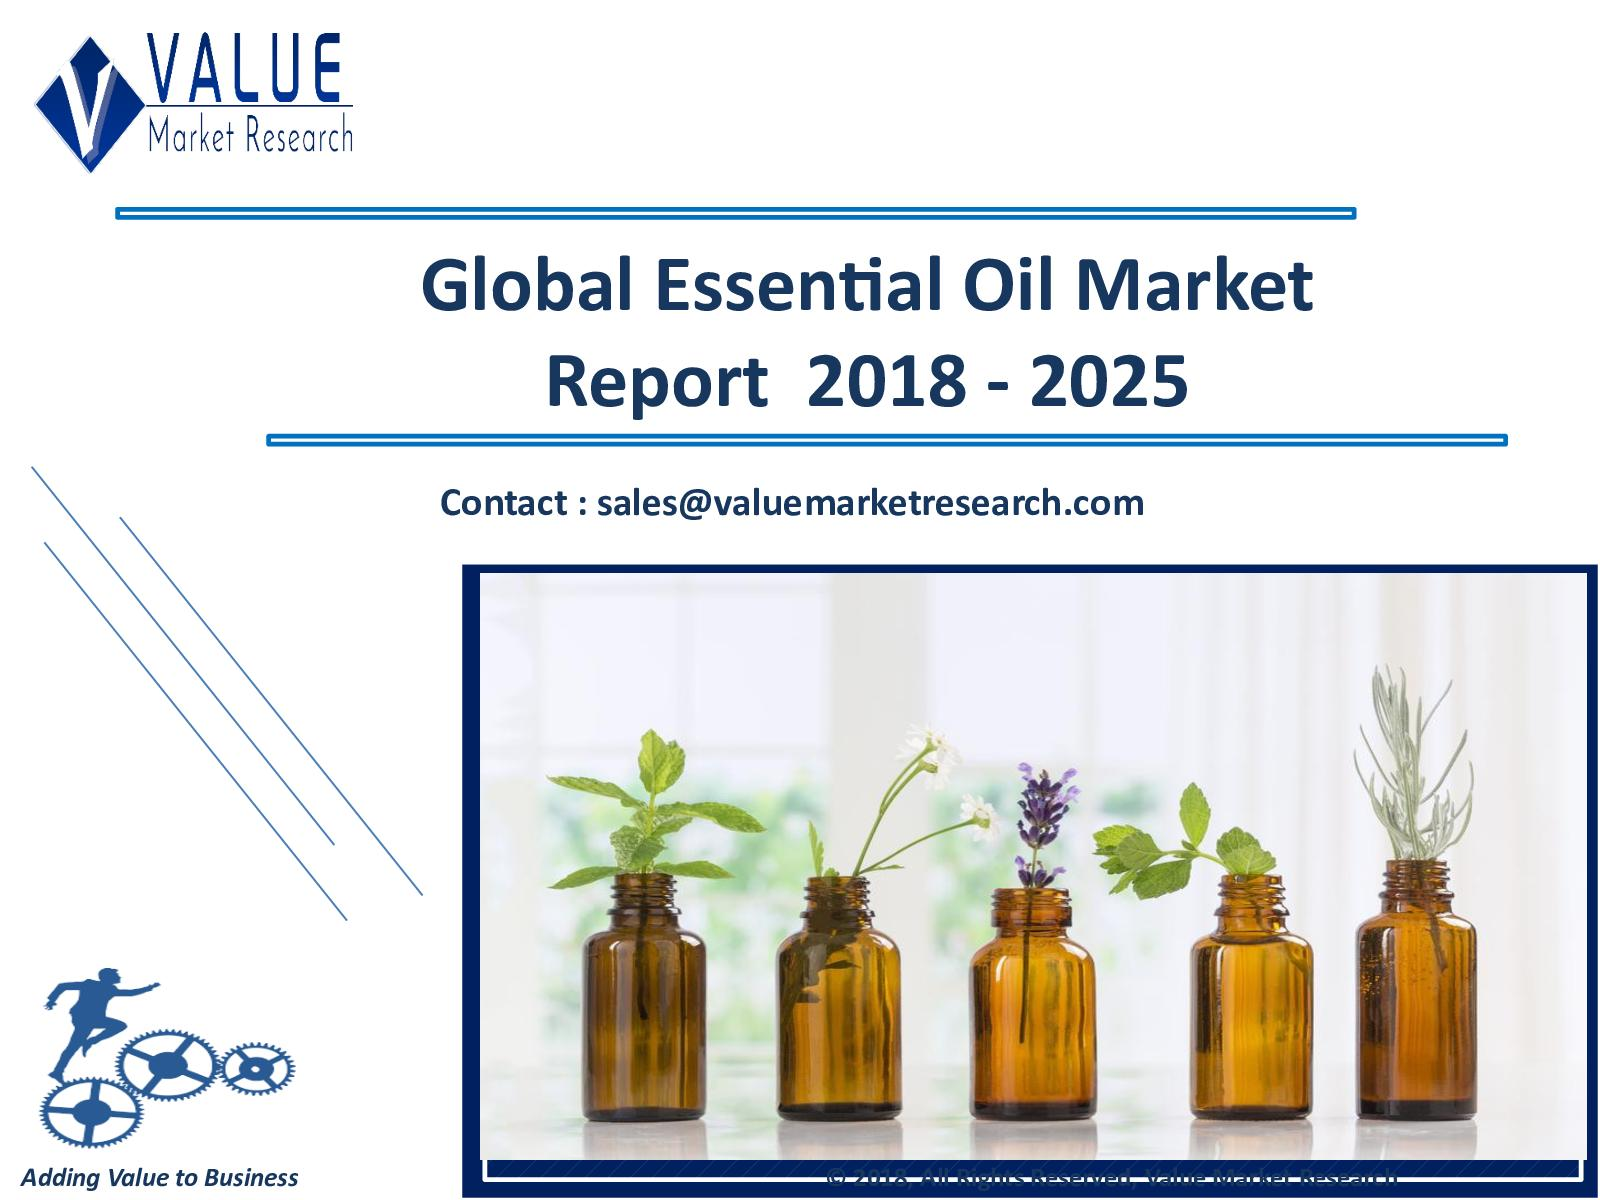 Essential Oil Market Size, Industry Analysis Report 2018-2025 Globally